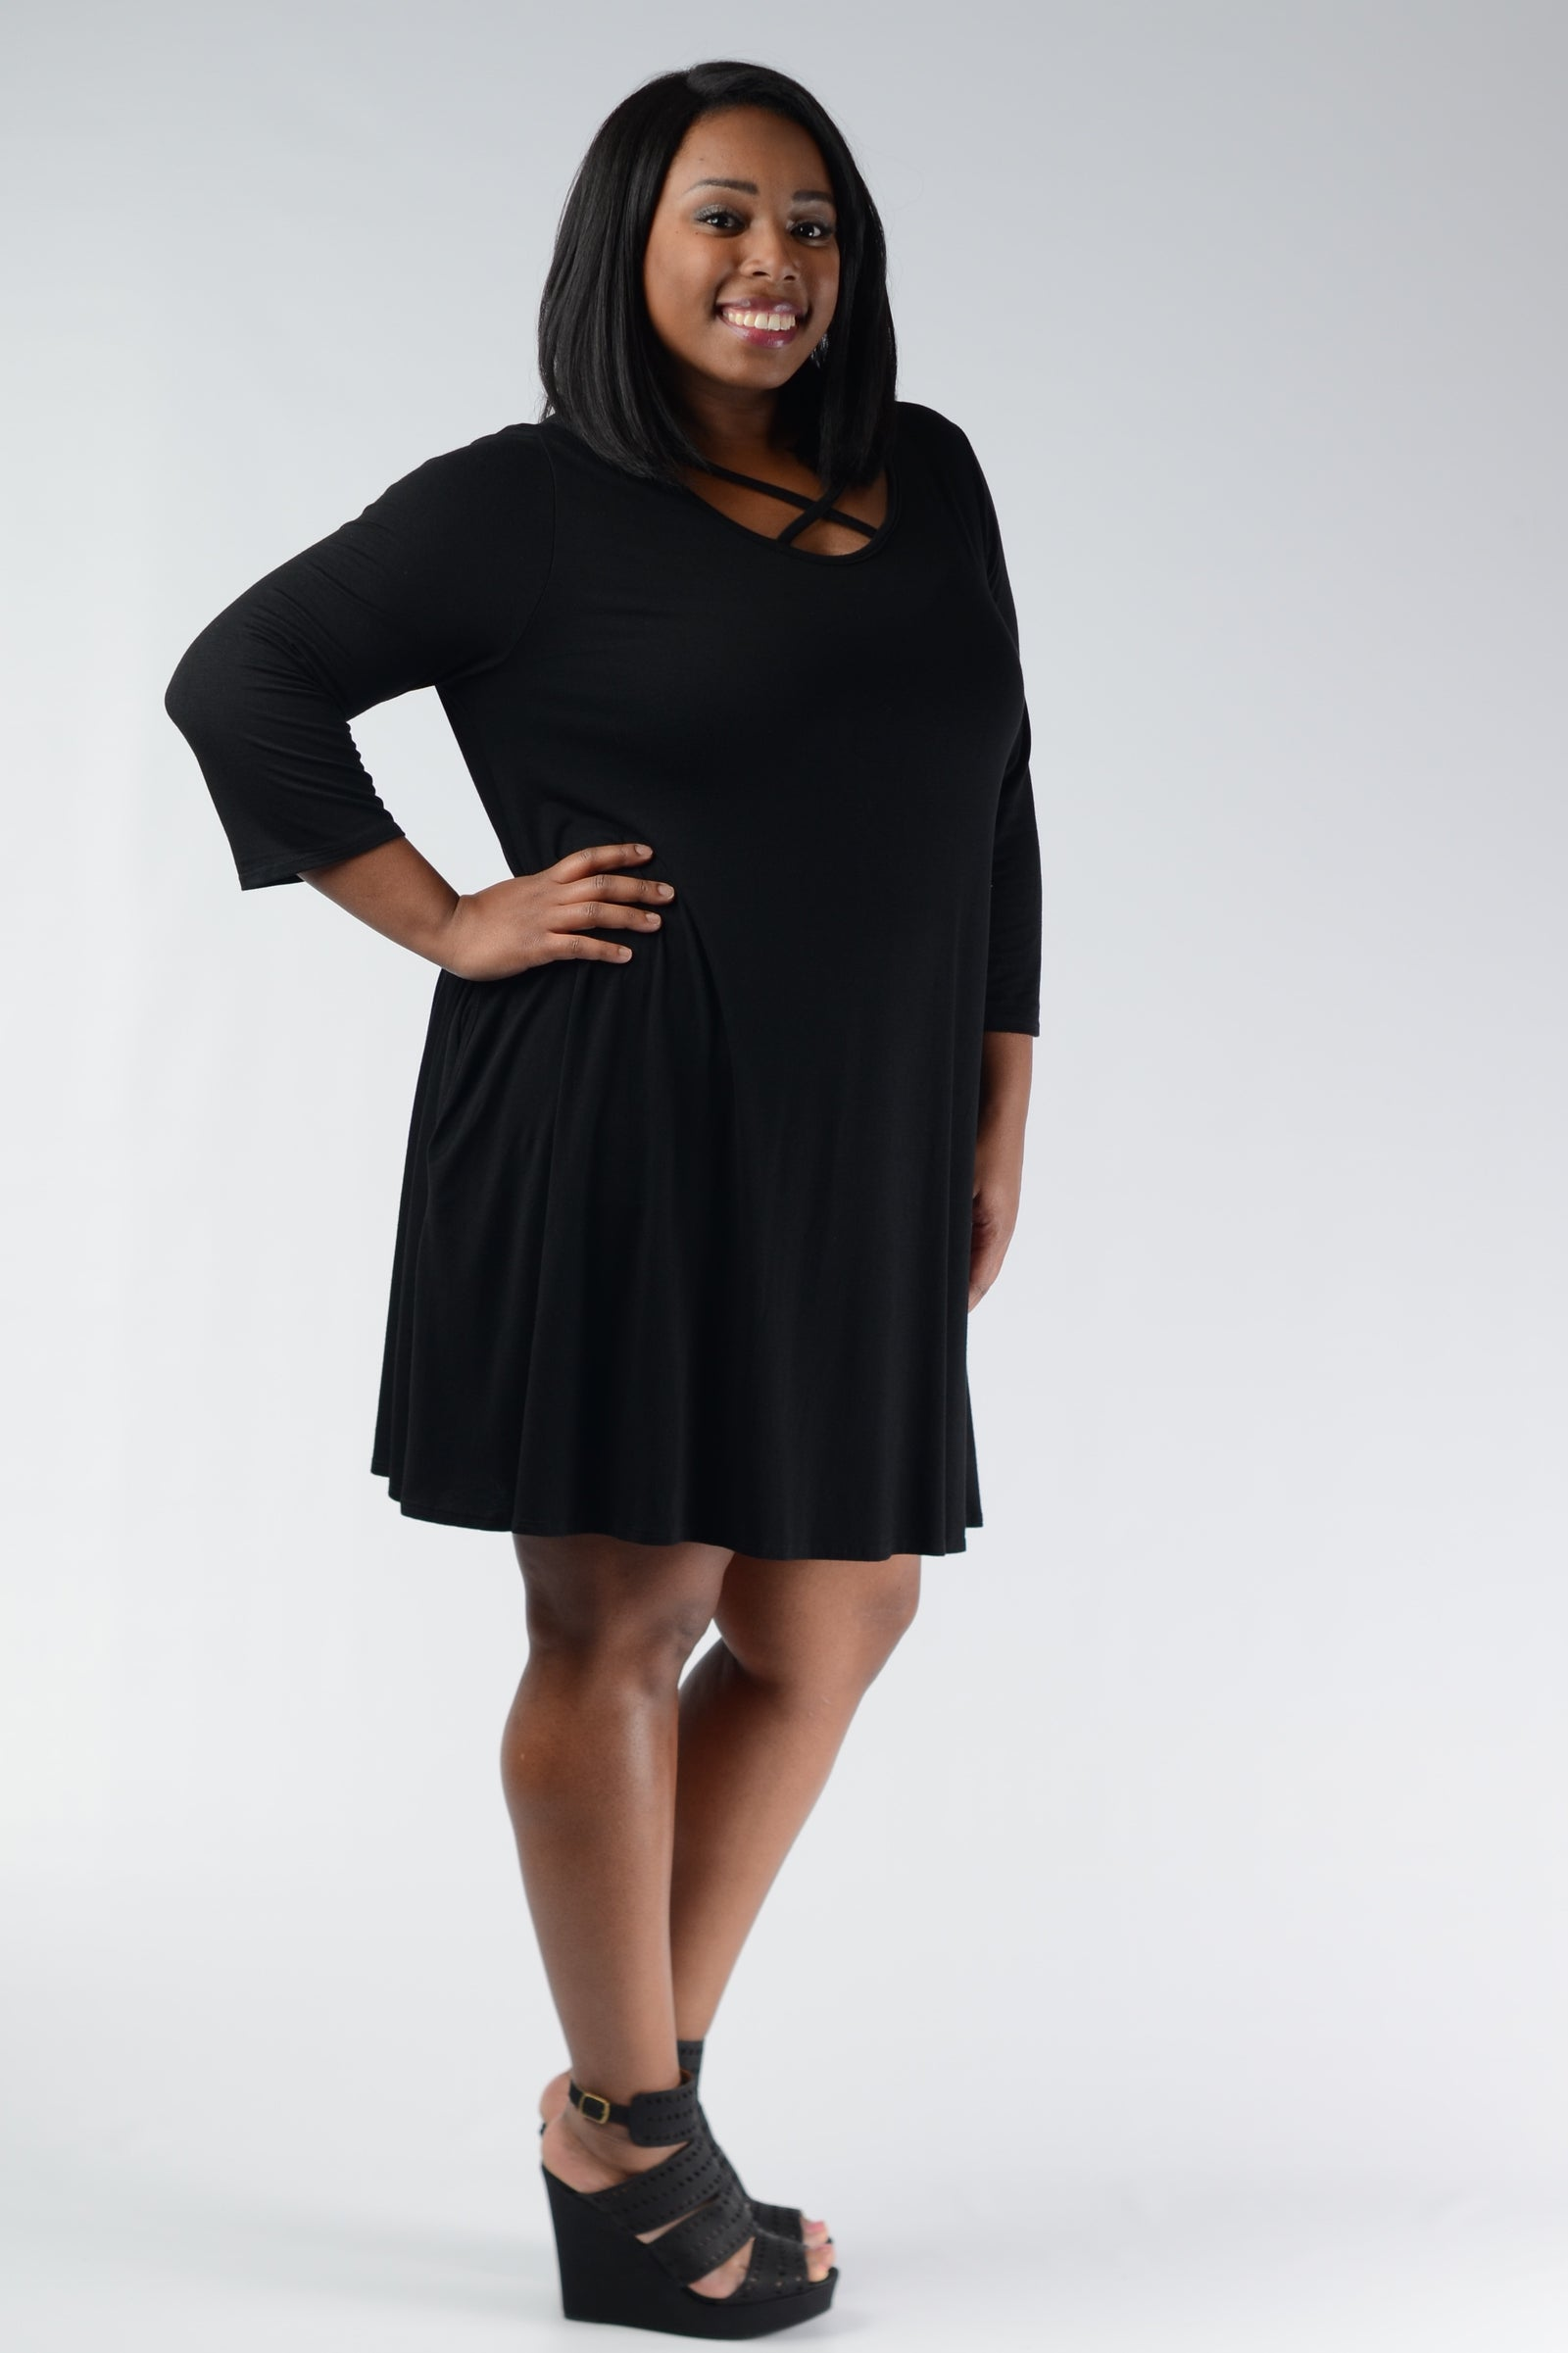 Black Corset Bust Pocket Dress - www.mycurvystore.com - Curvy Boutique - Plus Size